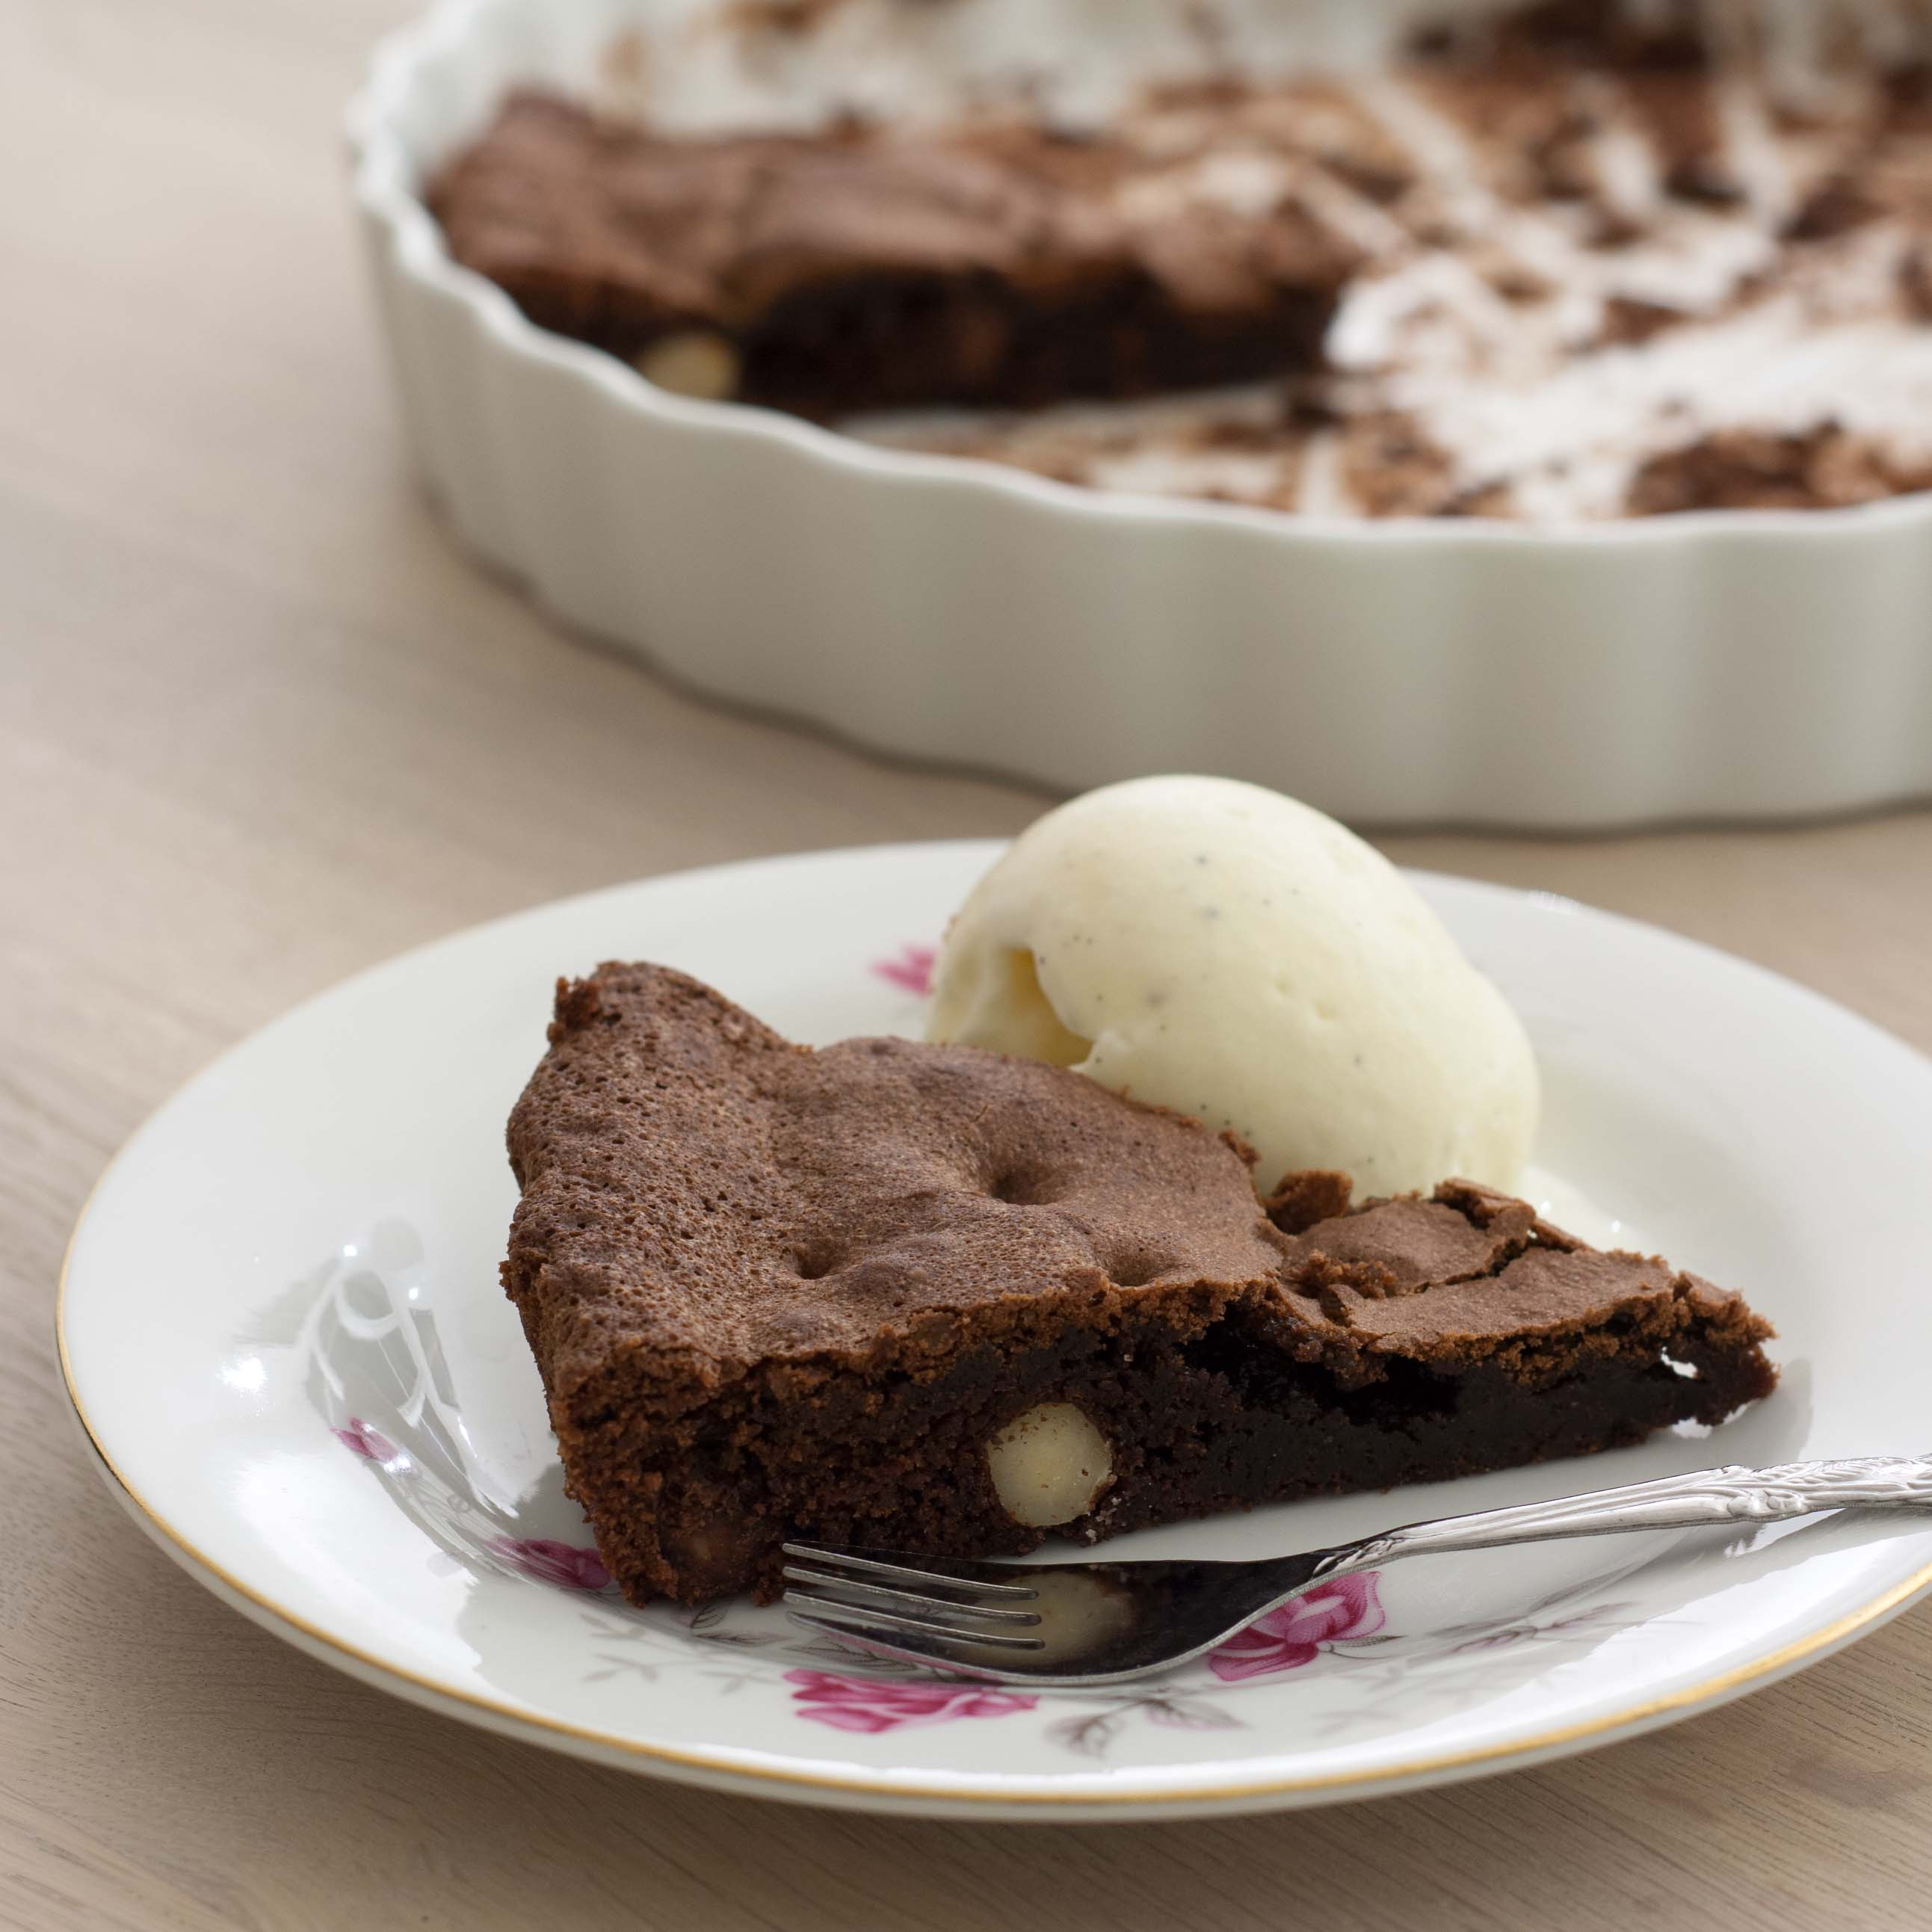 Recipe for Homemade Chocolate and Nougat Cake with whole Hazelnuts